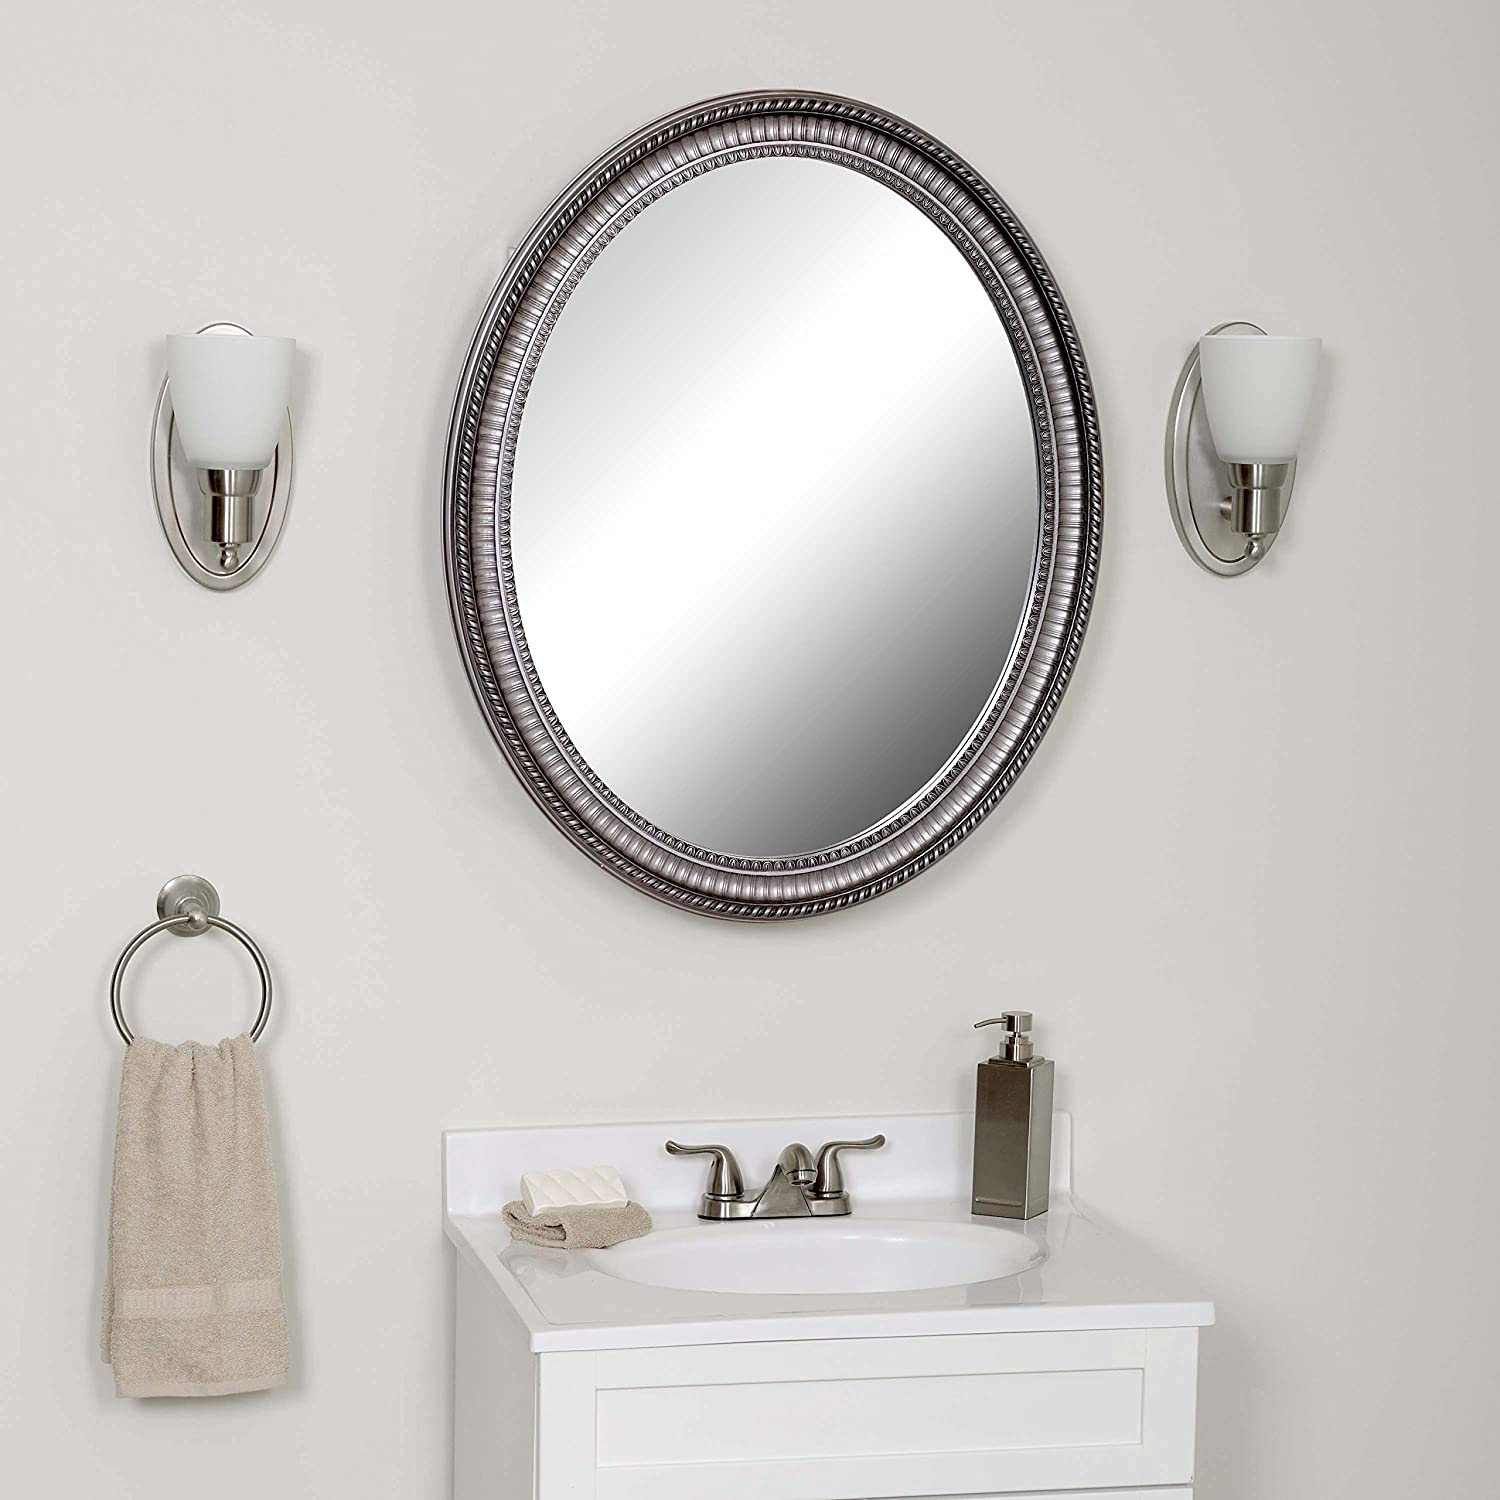 oval cabinet archer recessed kohler cabet lowes s cabinets mirrored wood medice medicine mirror